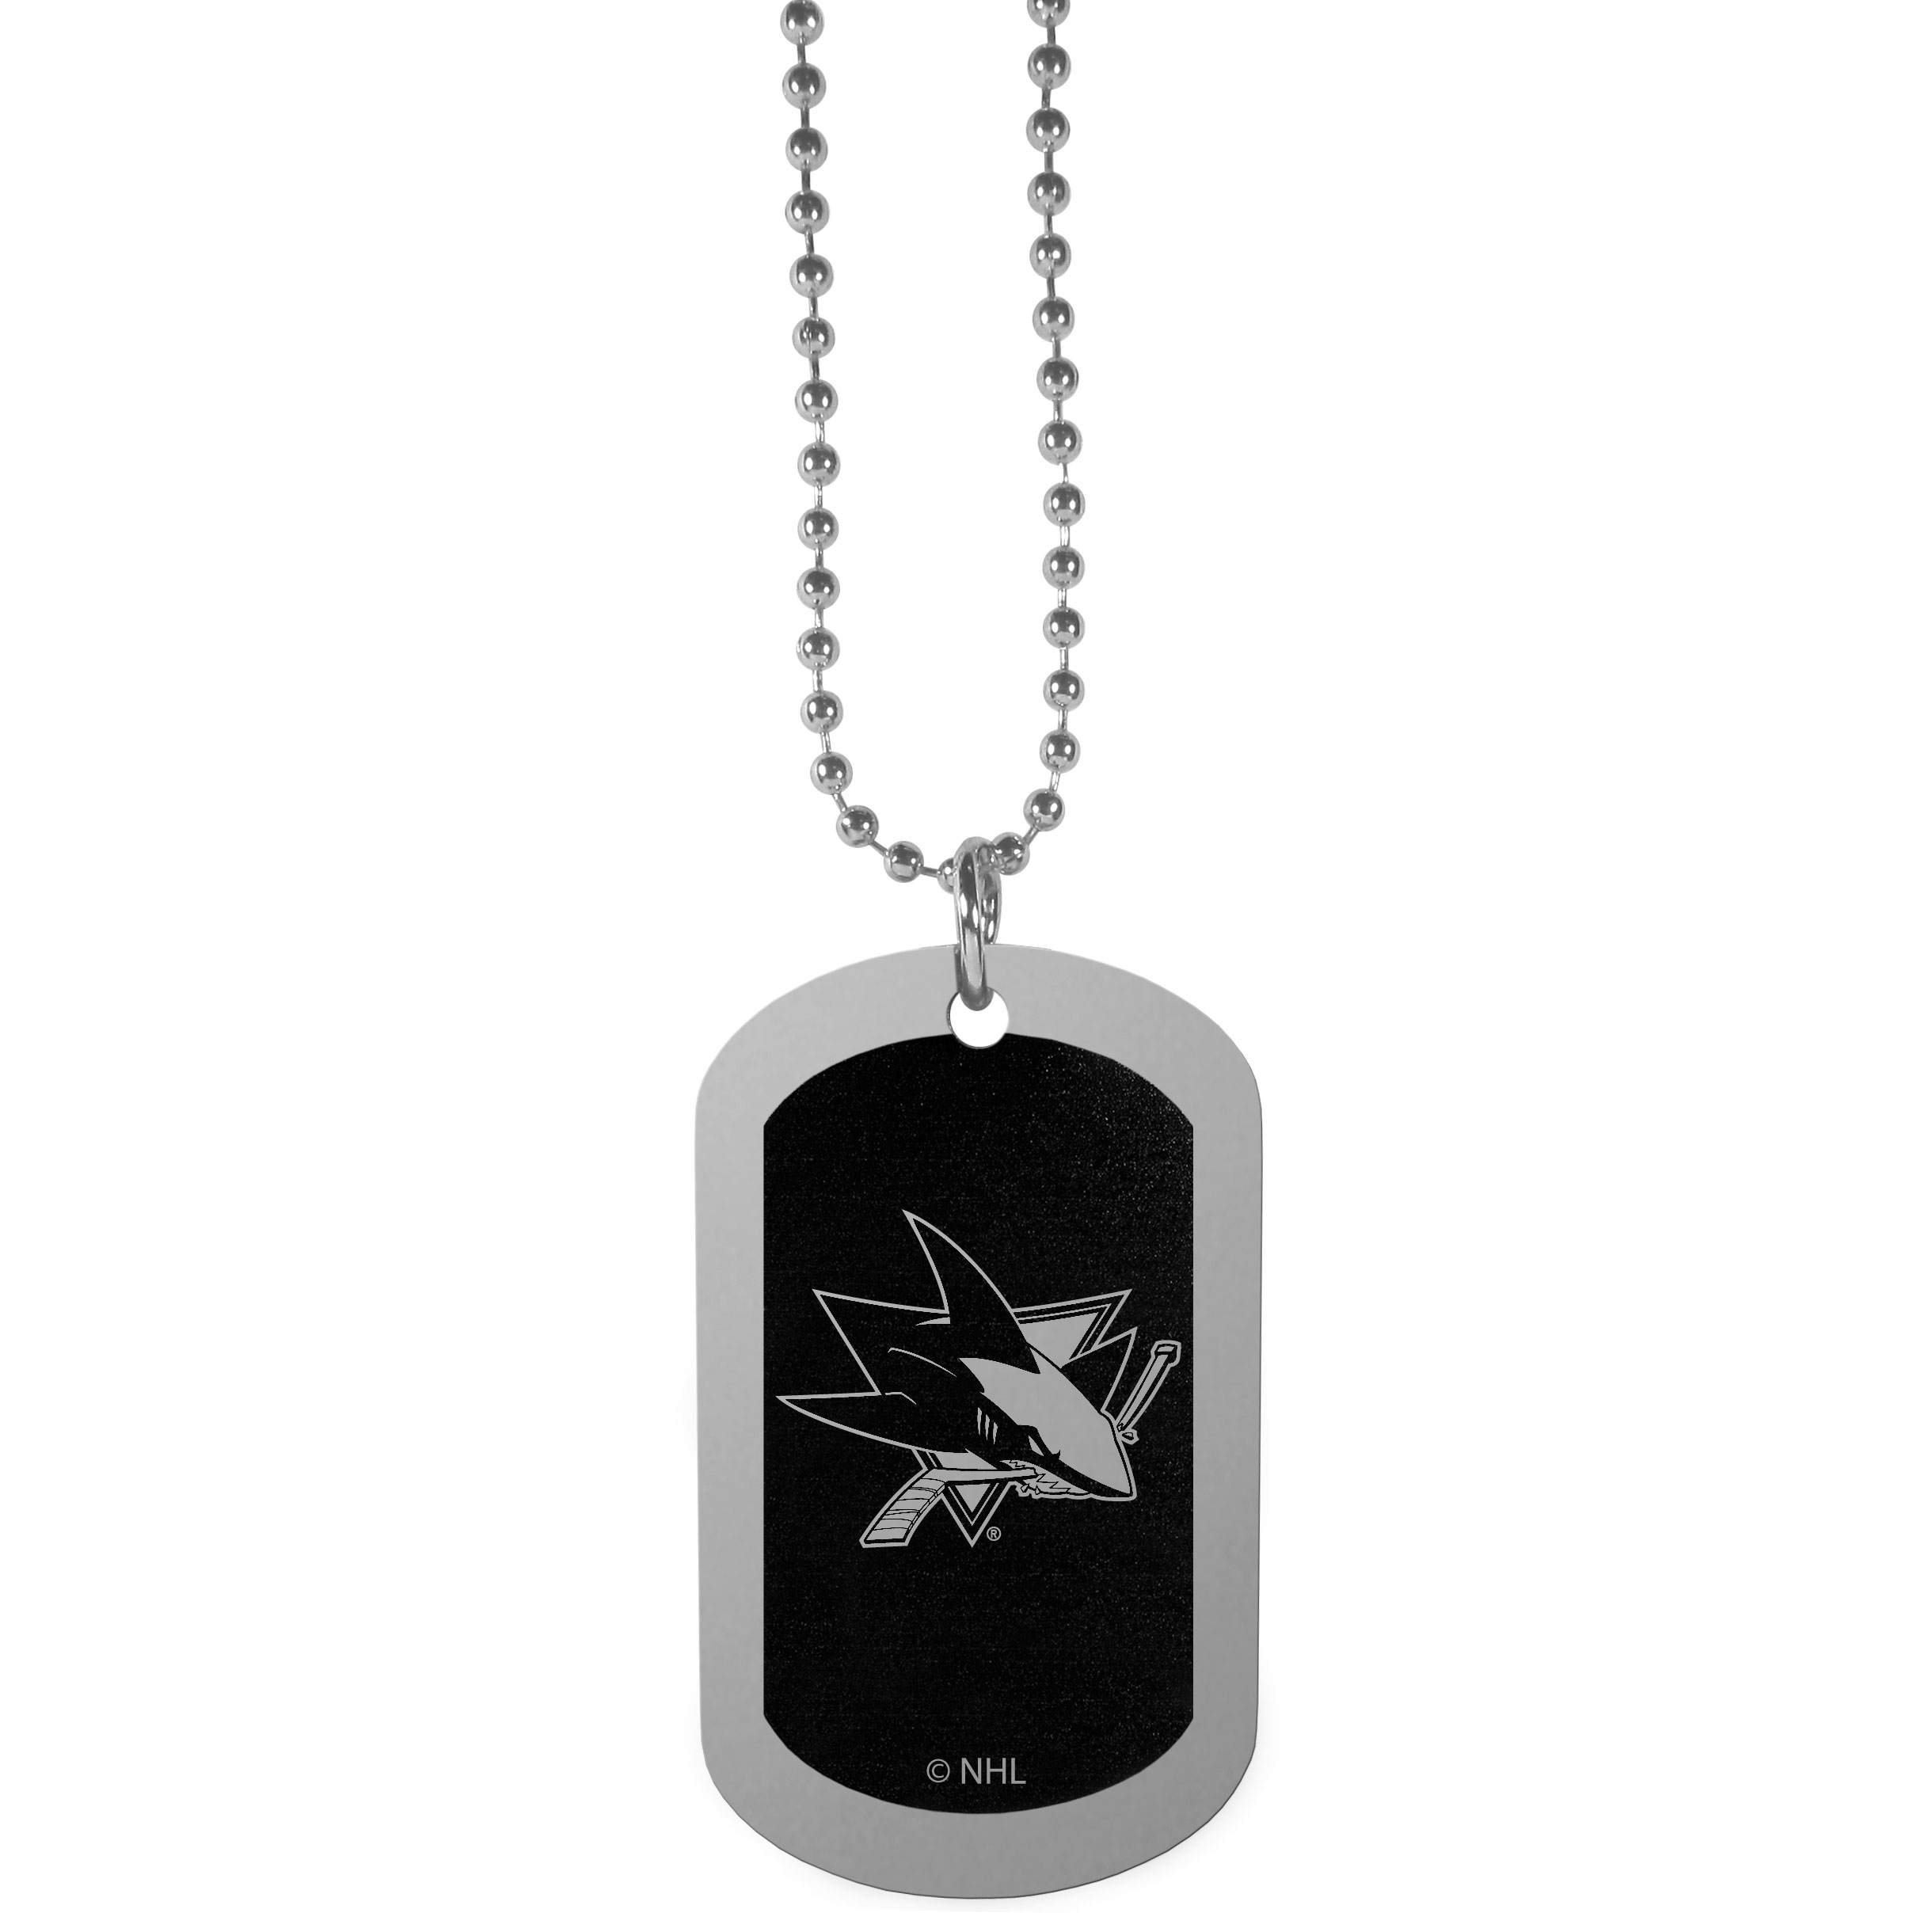 San Jose Sharks® Chrome Tag Necklace - Dog tag necklaces are a fashion statement that is here to stay. The sporty version of the classic tag features a black printed over a high polish tag to create a bold and sporty look. The tag comes on a 26 inch ball chain with a ball and joint clasp. Any San Jose Sharks® would be proud to wear this attractive fashion accessory.